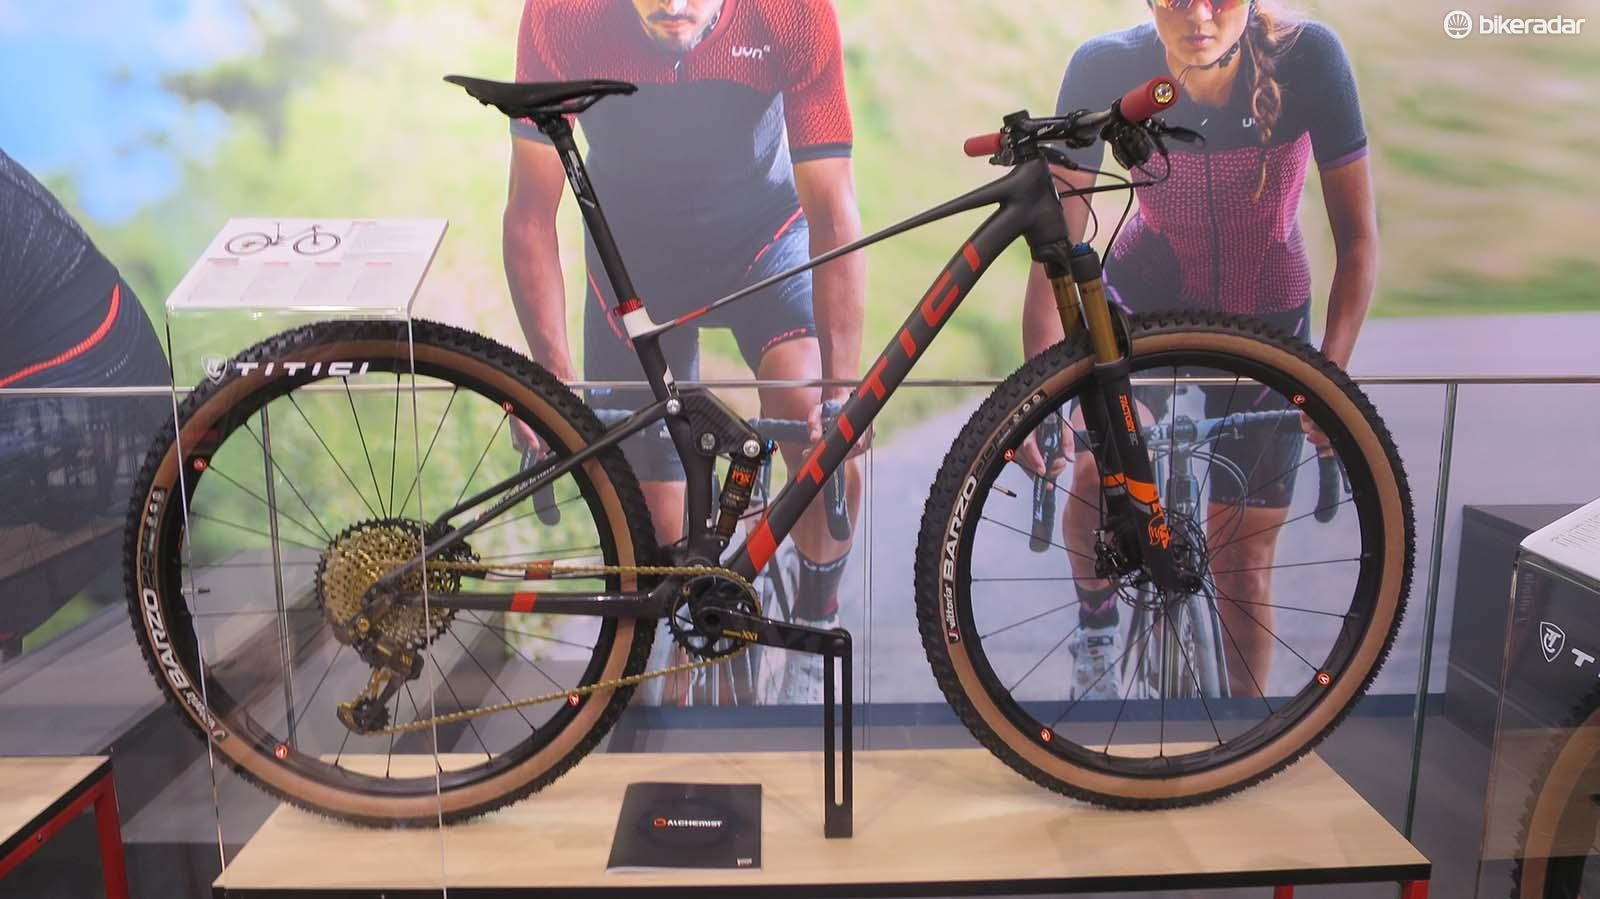 Titici's 29er full suspension looks very much like an XC race machine